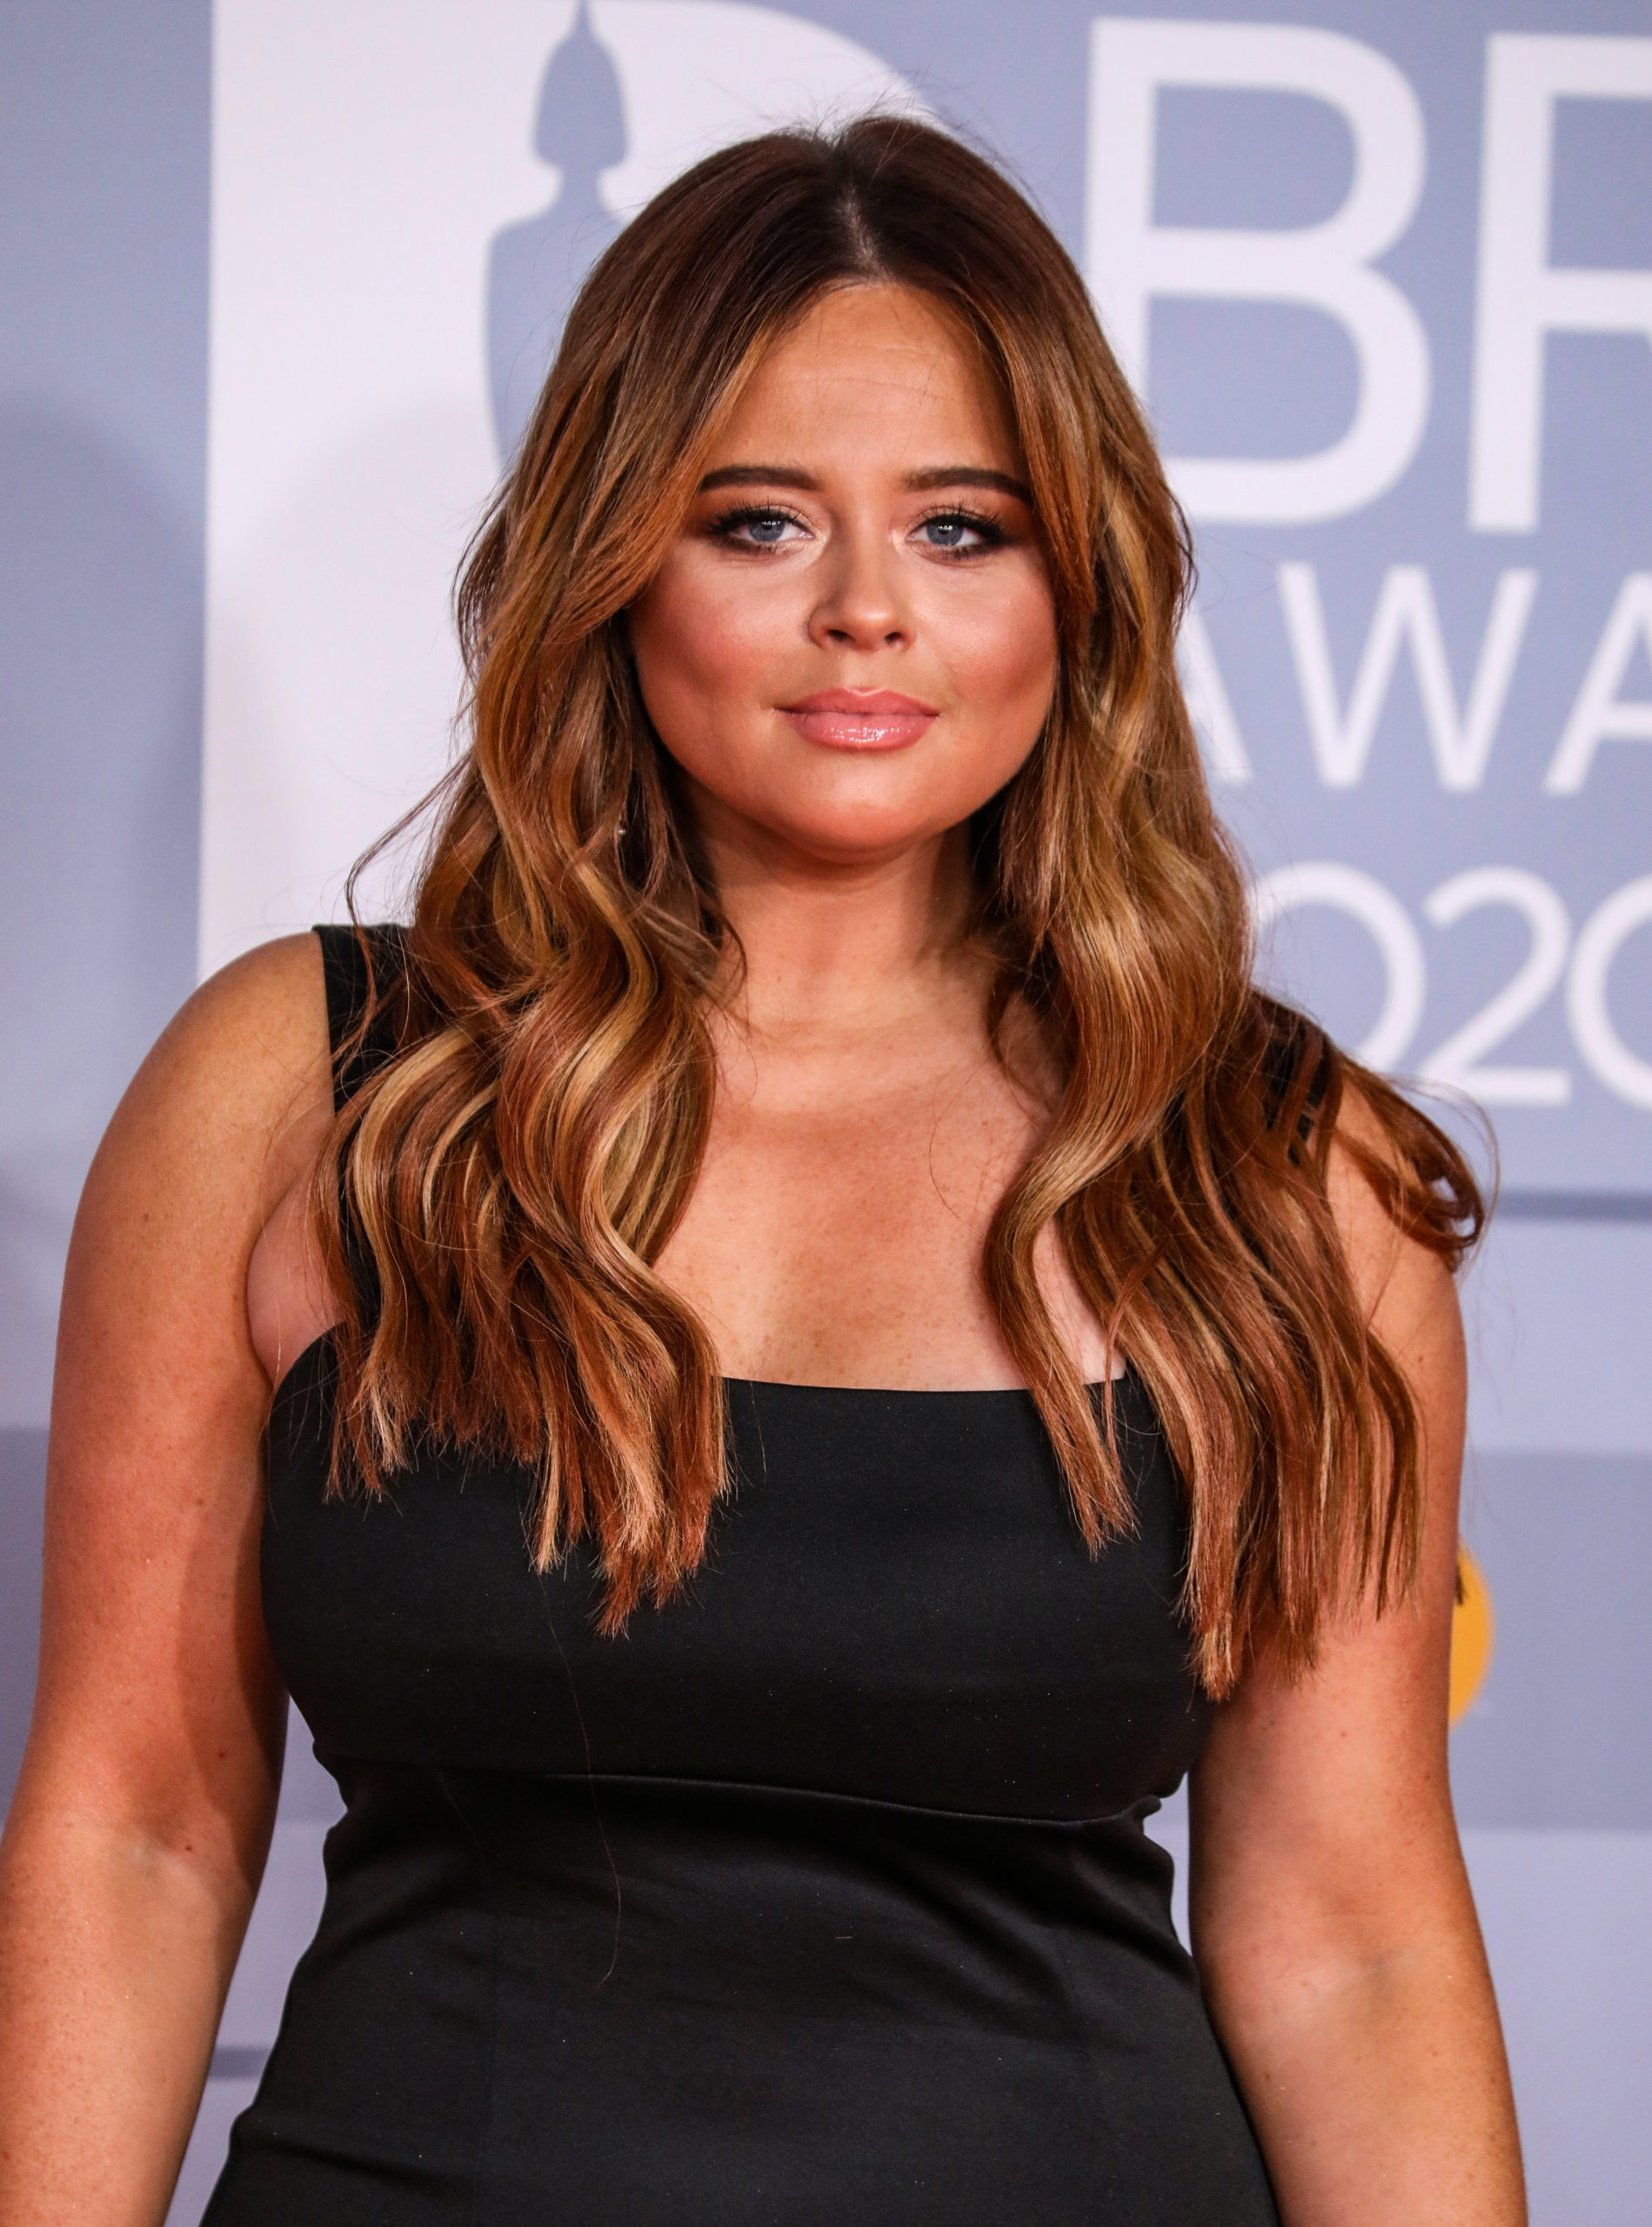 Emily Atack has been single since last September